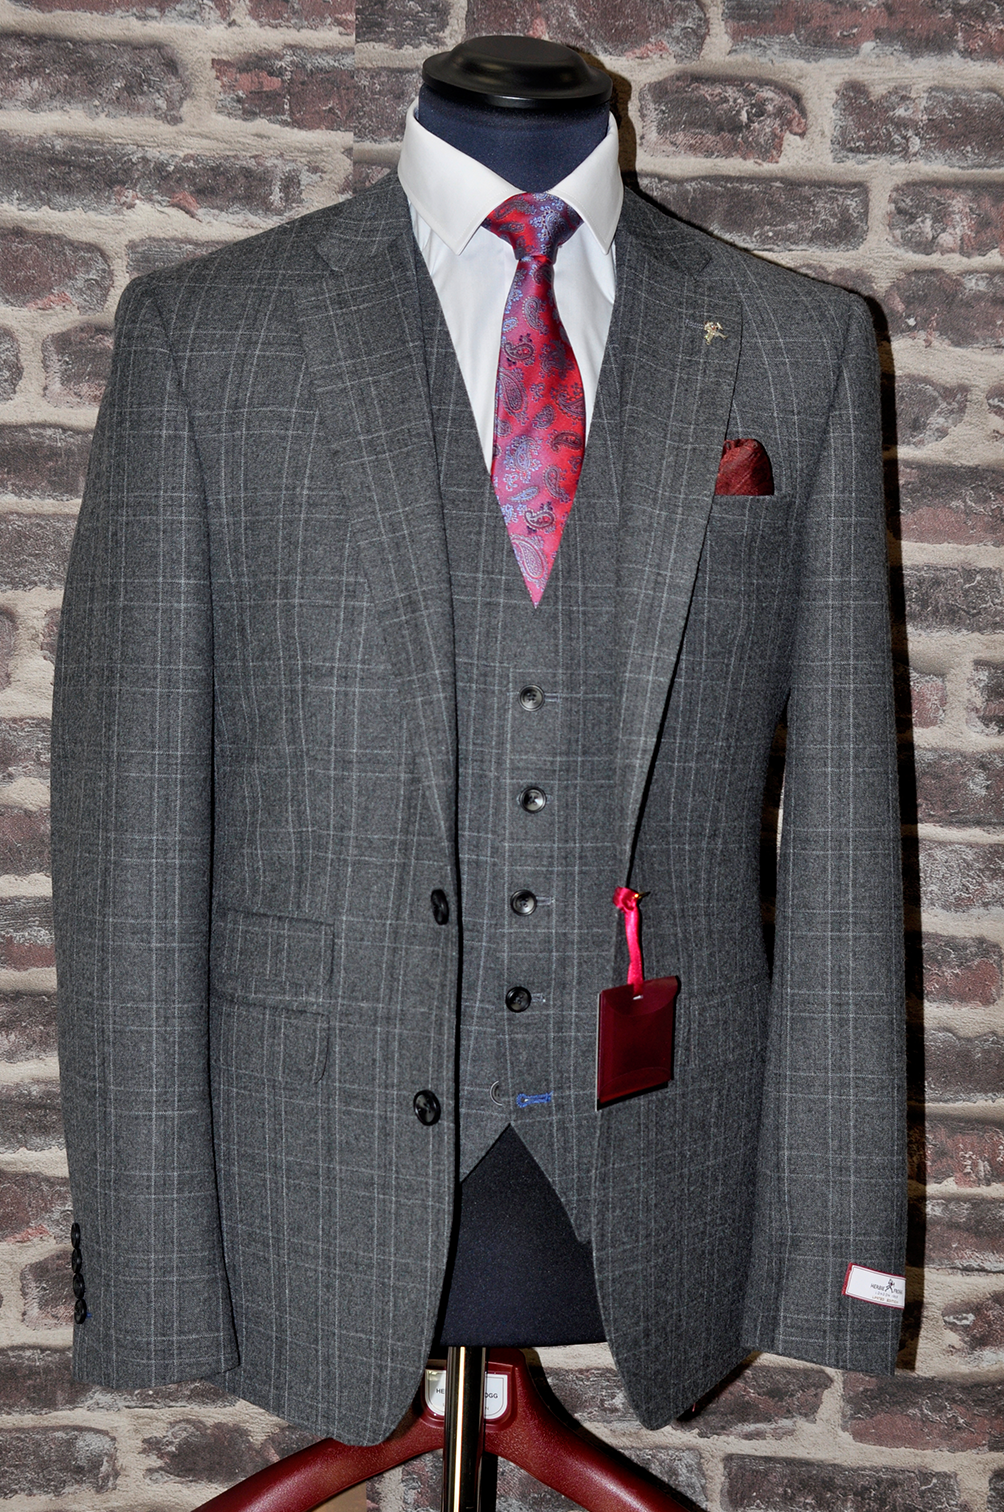 Grey Check Herbie Frogg – 3 Piece Suit